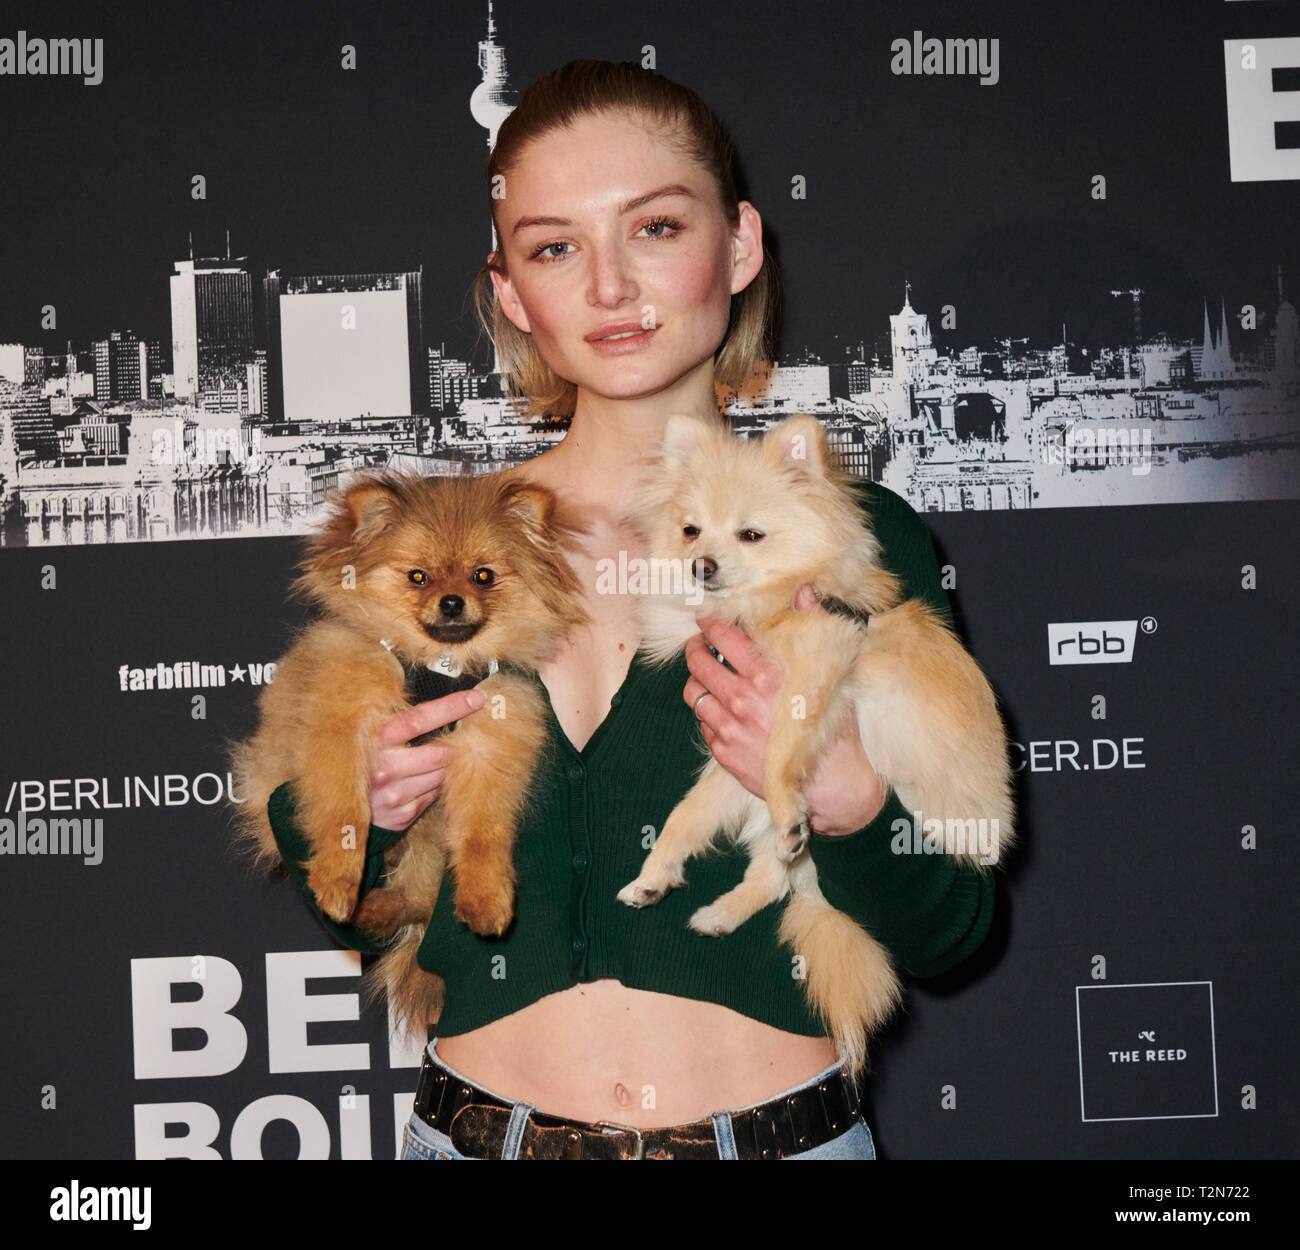 Berlin, Germany. 03rd Apr, 2019. Ex-GNTM candidate Julia Wulf stands with her dogs Wilson and Amy in front of the photo wall for the cinema premiere Berlin Bouncer. Credit: Annette Riedl/dpa/Alamy Live News - Stock Image